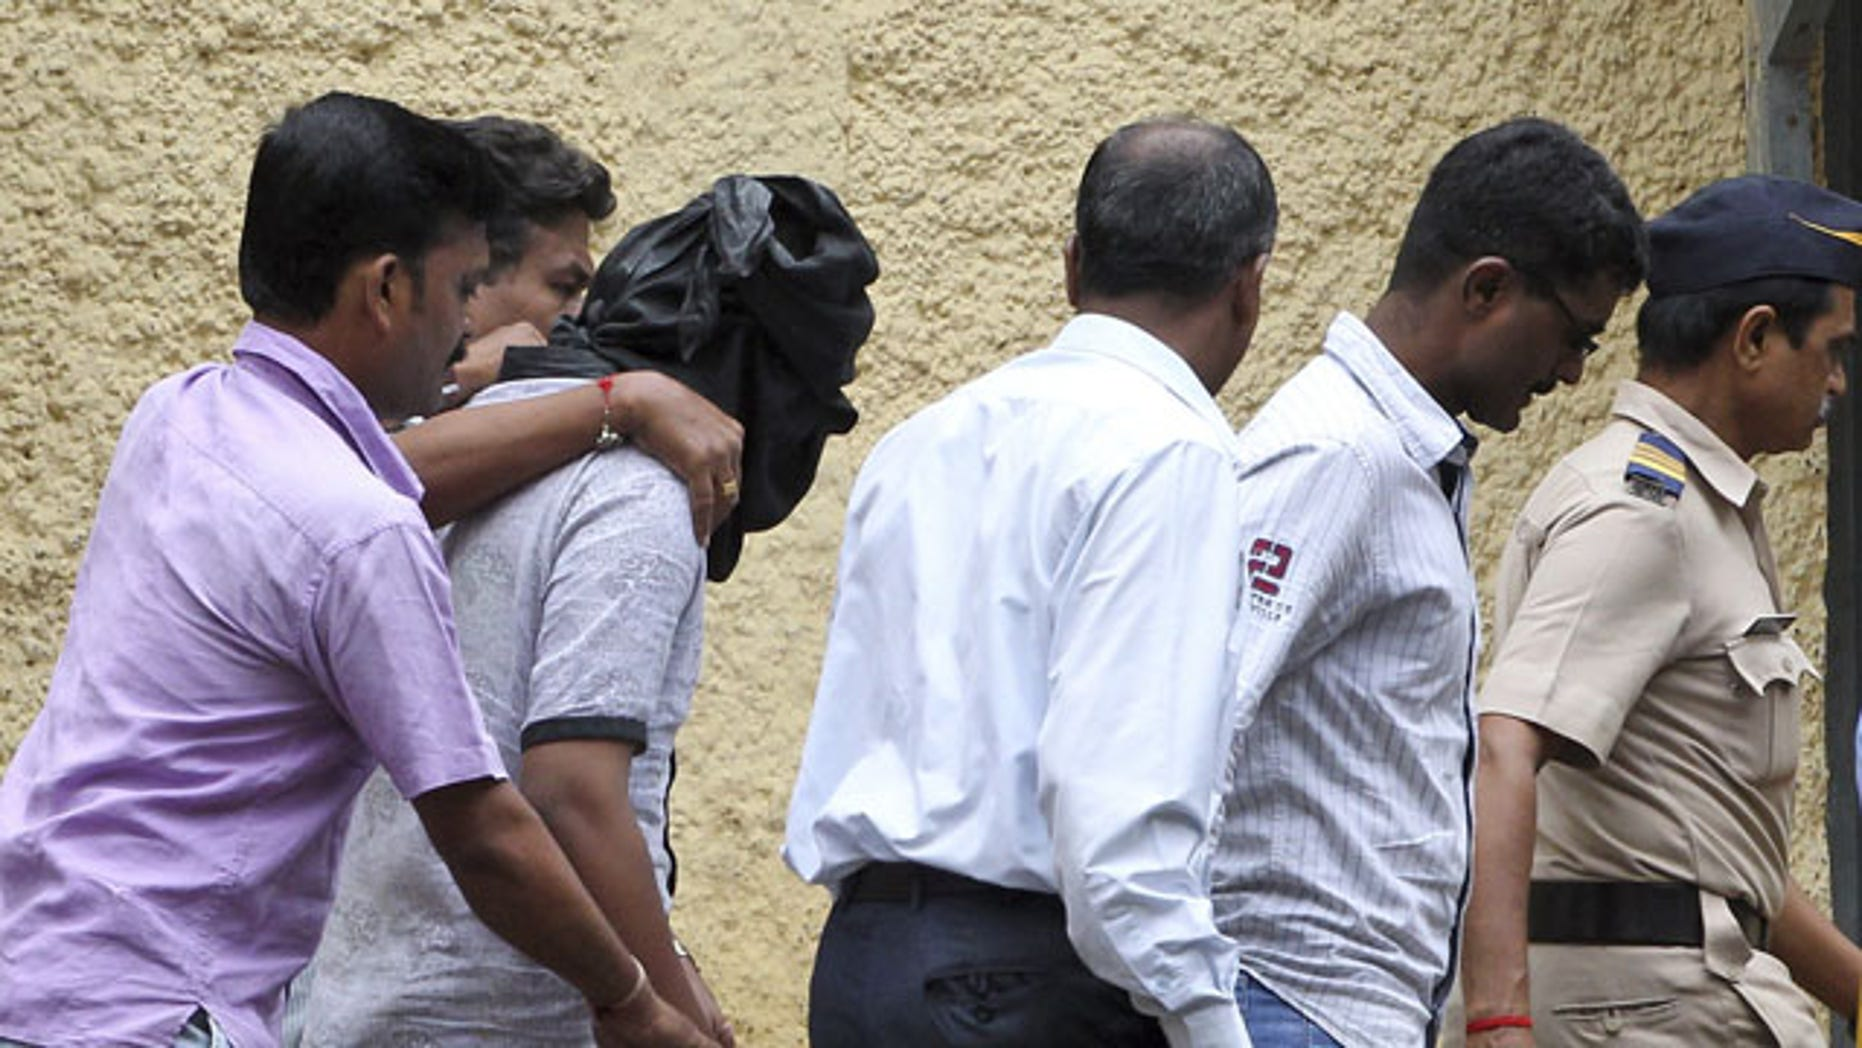 August 24, 2013: Police officials escort an accused, head covered with black cloth, in the gang rape of a young photojournalist in the Indian financial hub of Mumbai, India.